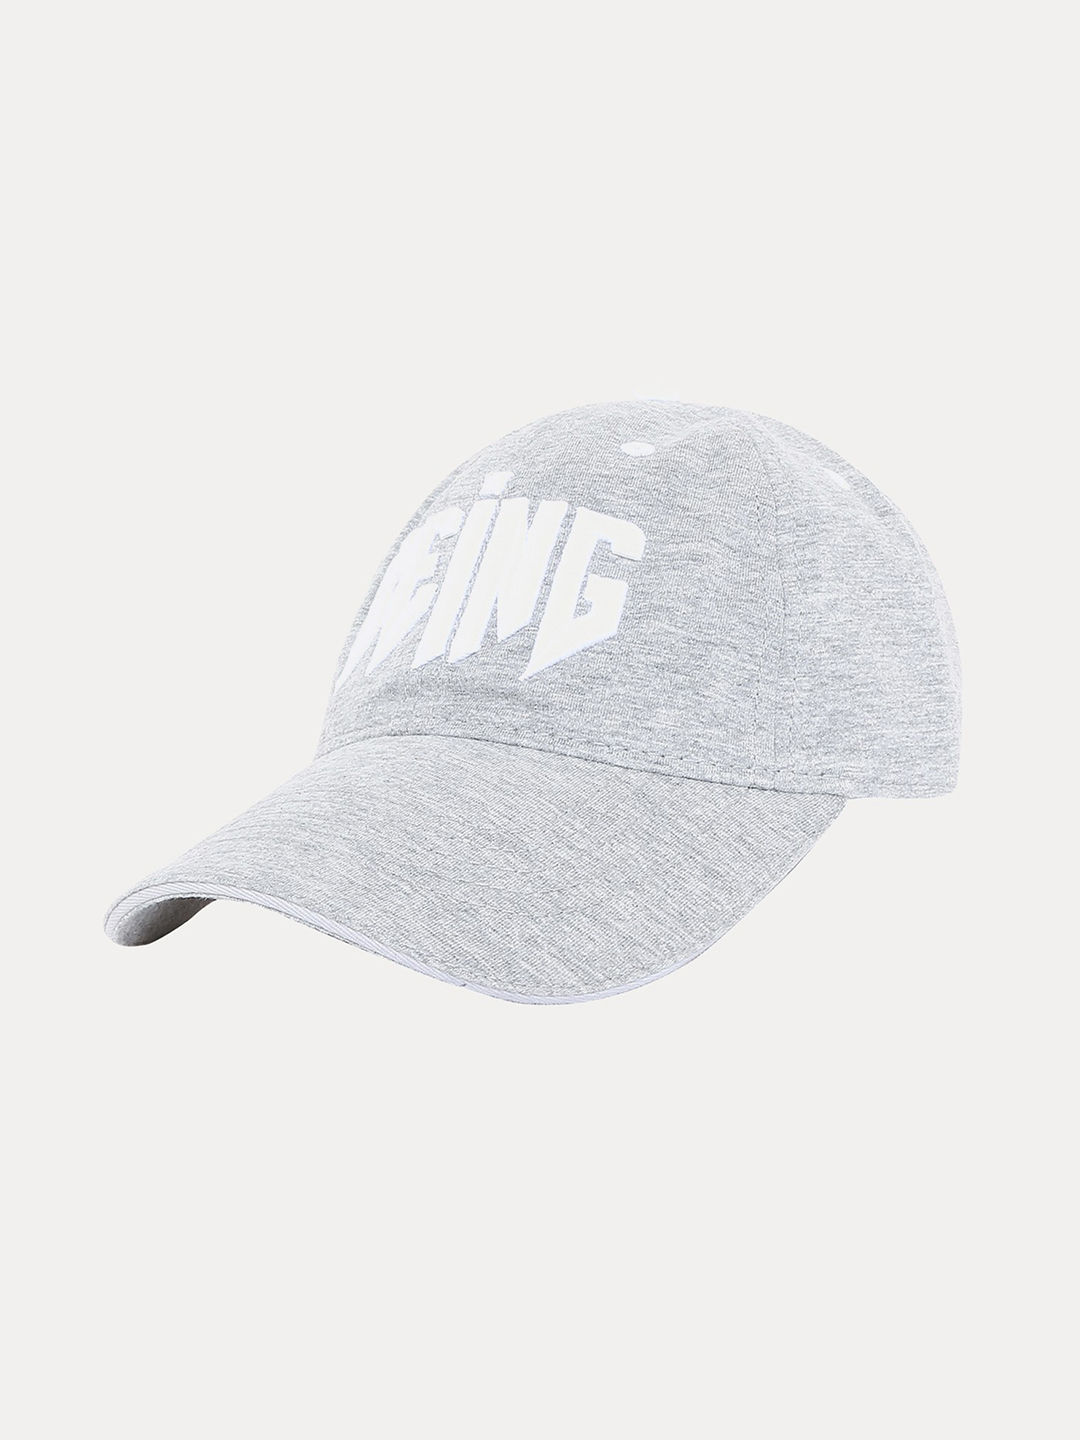 GREY PRINTED BASEBALL CAP